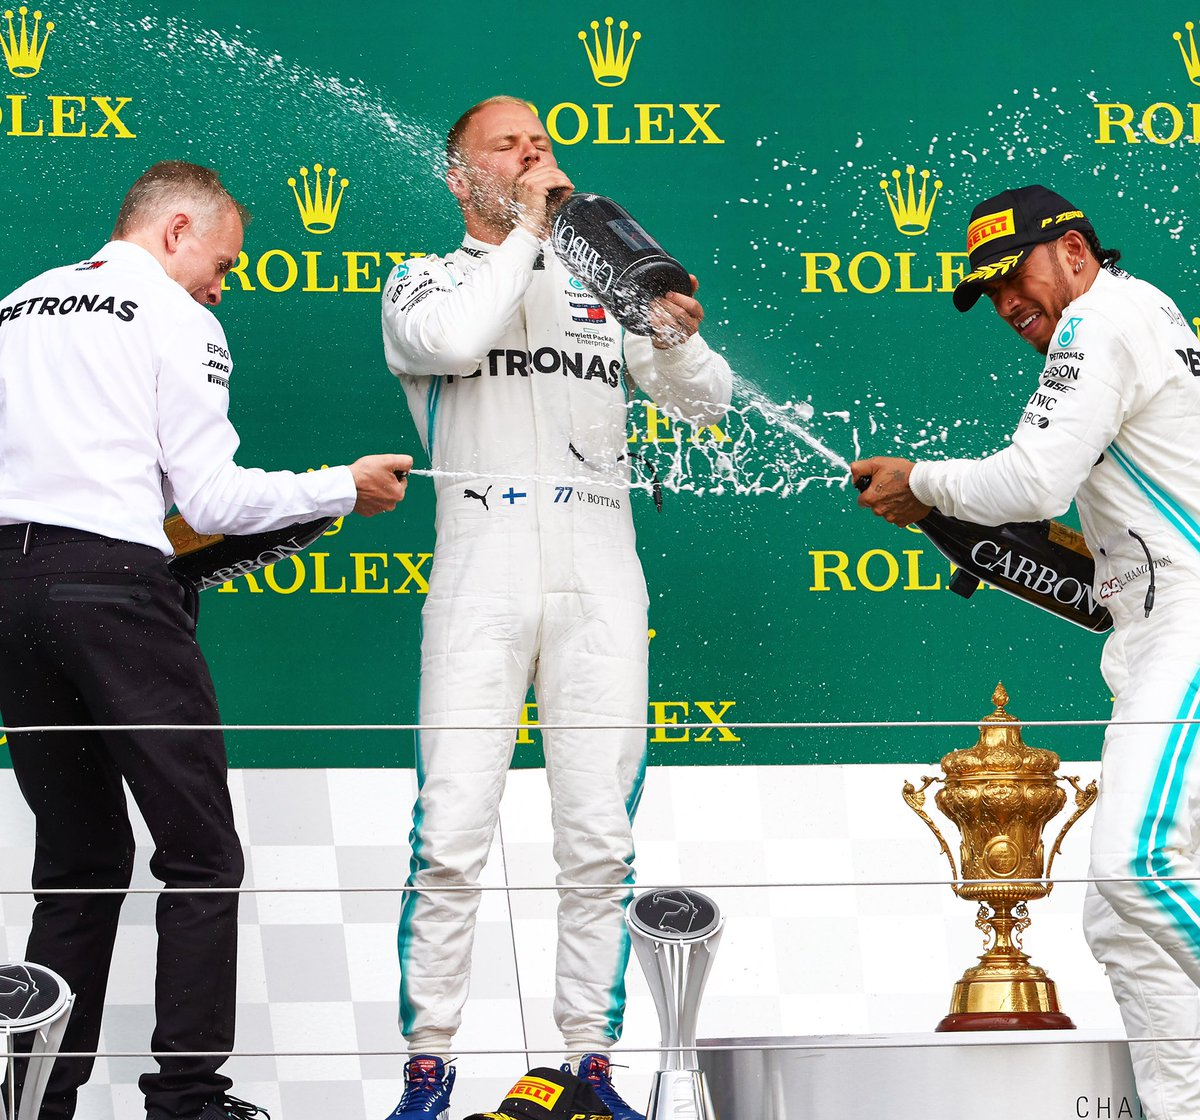 Spot the Finn 😂🍾   That's nine podiums in 2019 for @ValtteriBottas!  His best ever start to an @F1 season 💪